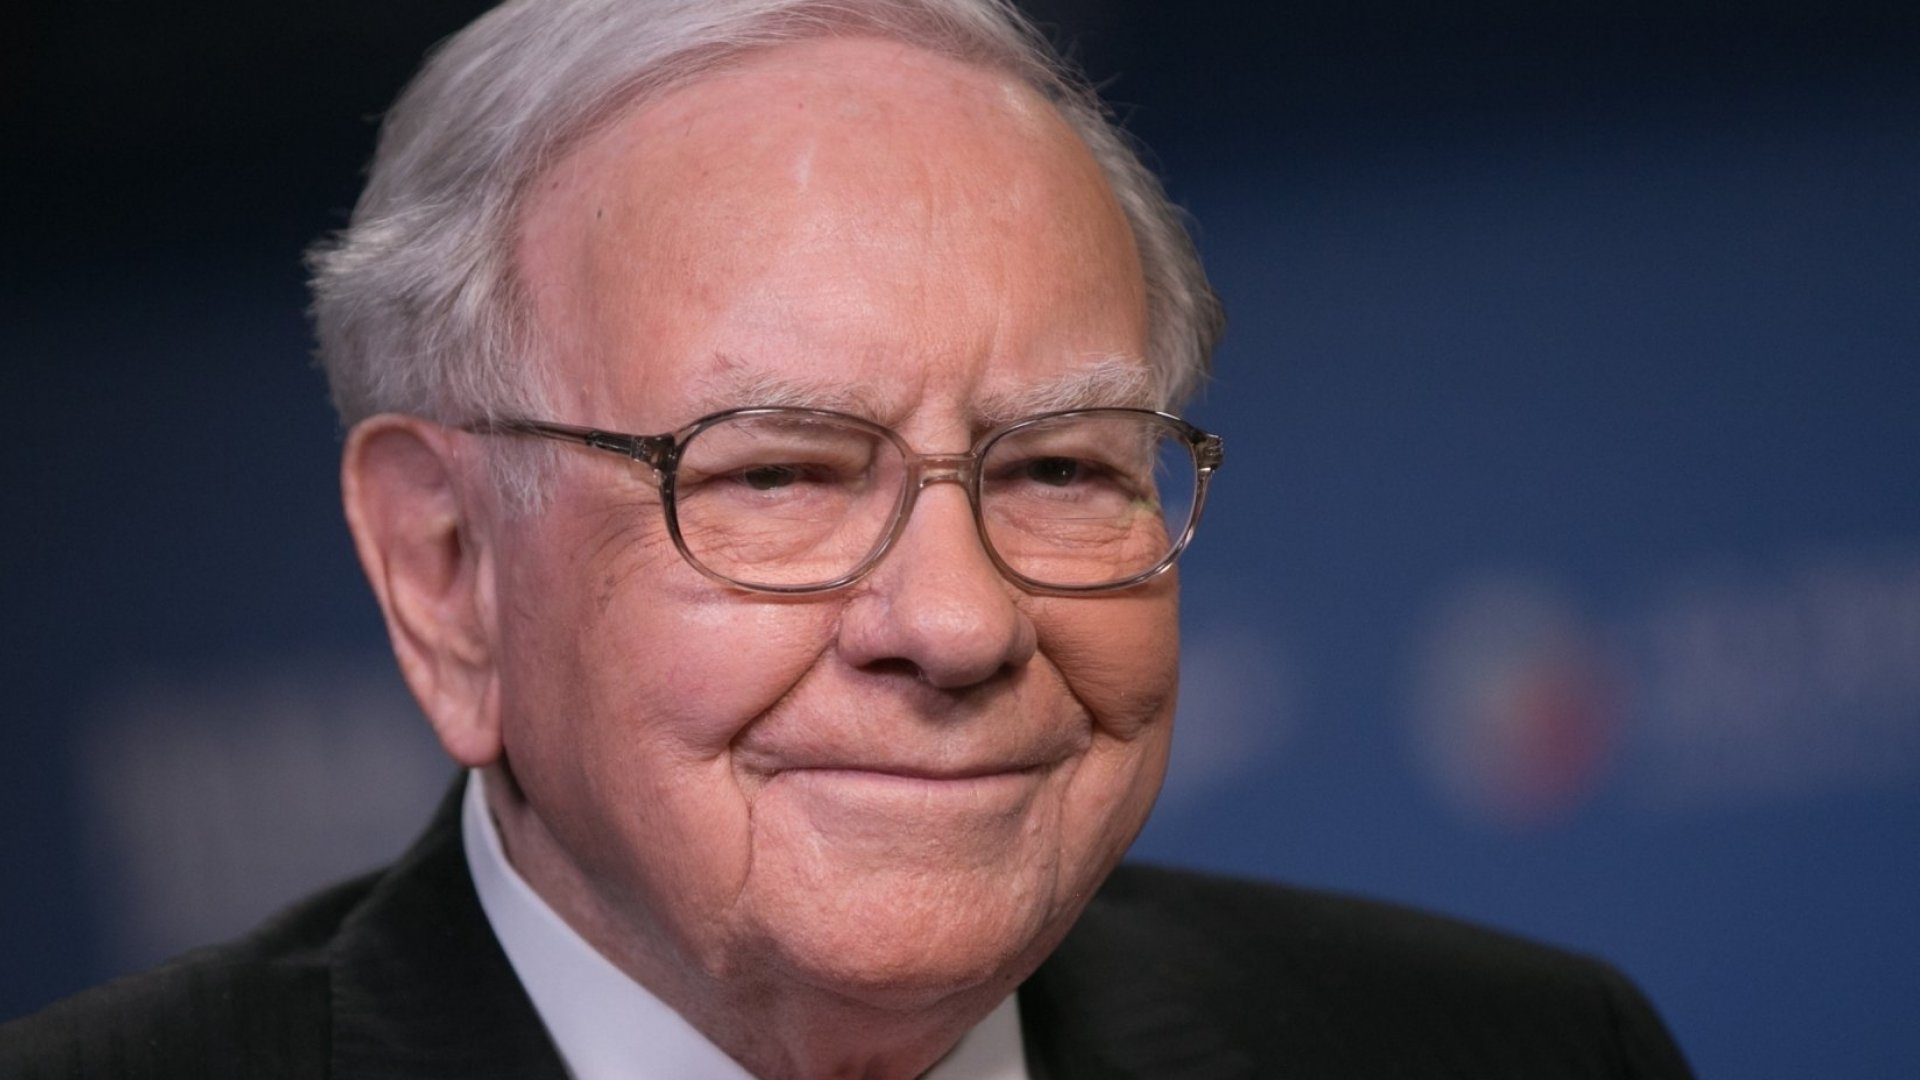 The 1 Non-Money Habit from Warren Buffett You Should Immediately Copy